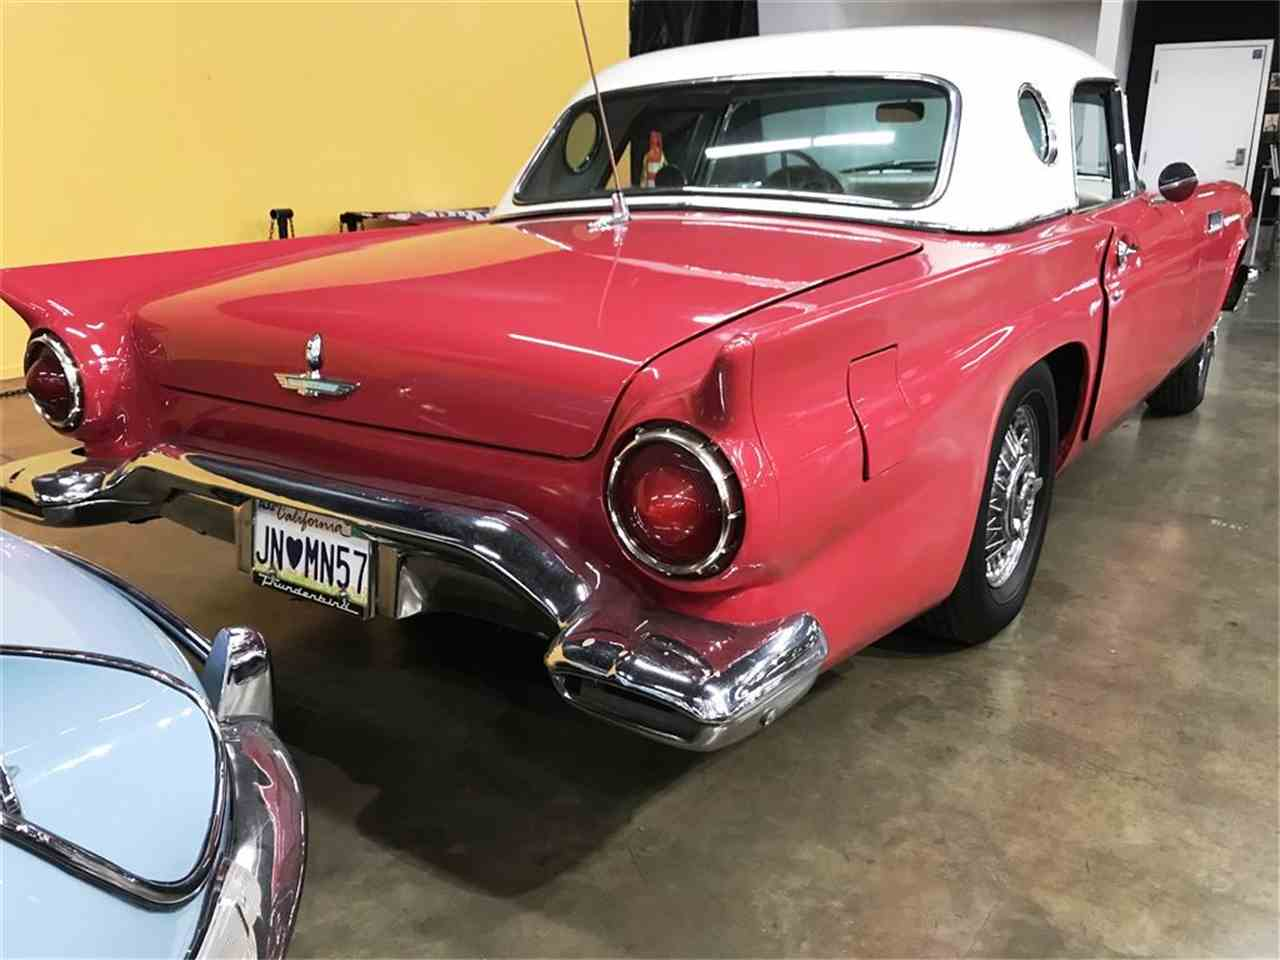 Large Picture of Classic 1957 Ford Thunderbird located in California - $22,500.00 - LSUQ